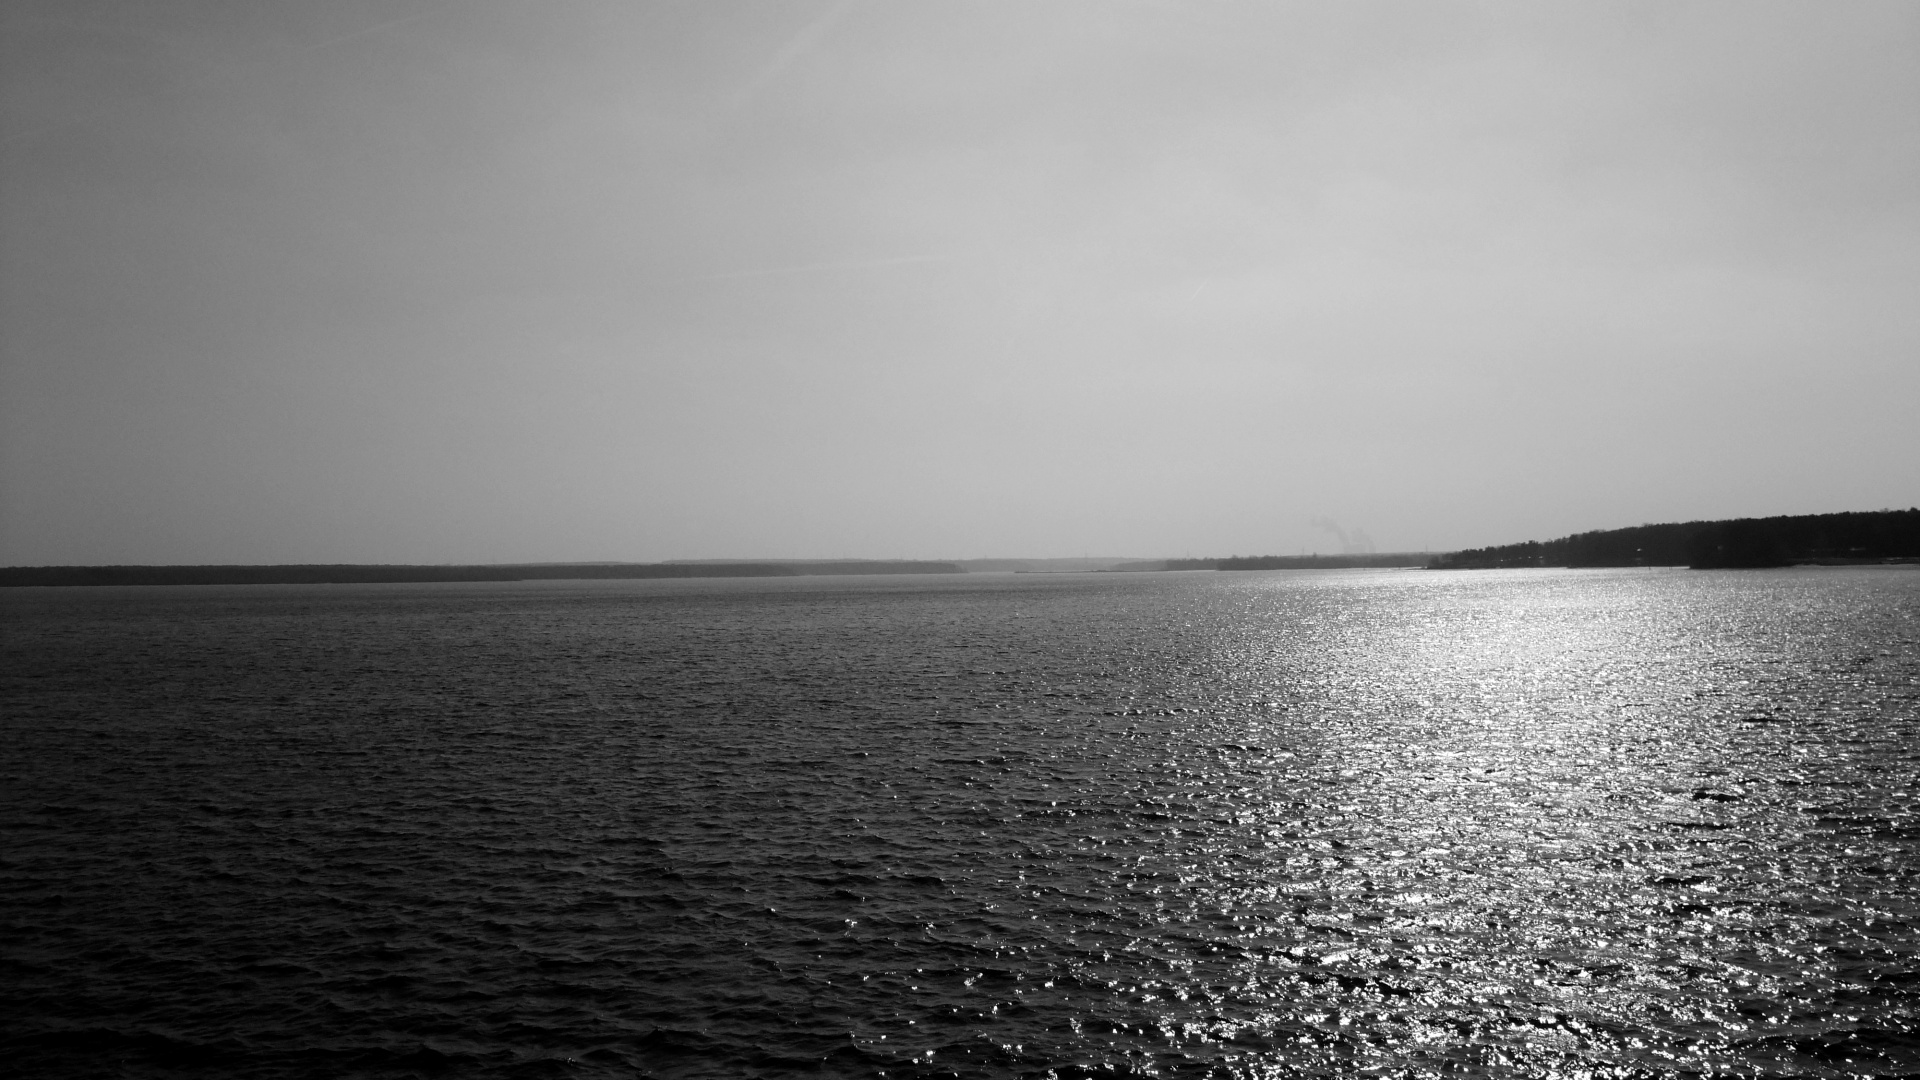 Lakes ocean black white sunlight reflection water sky ...